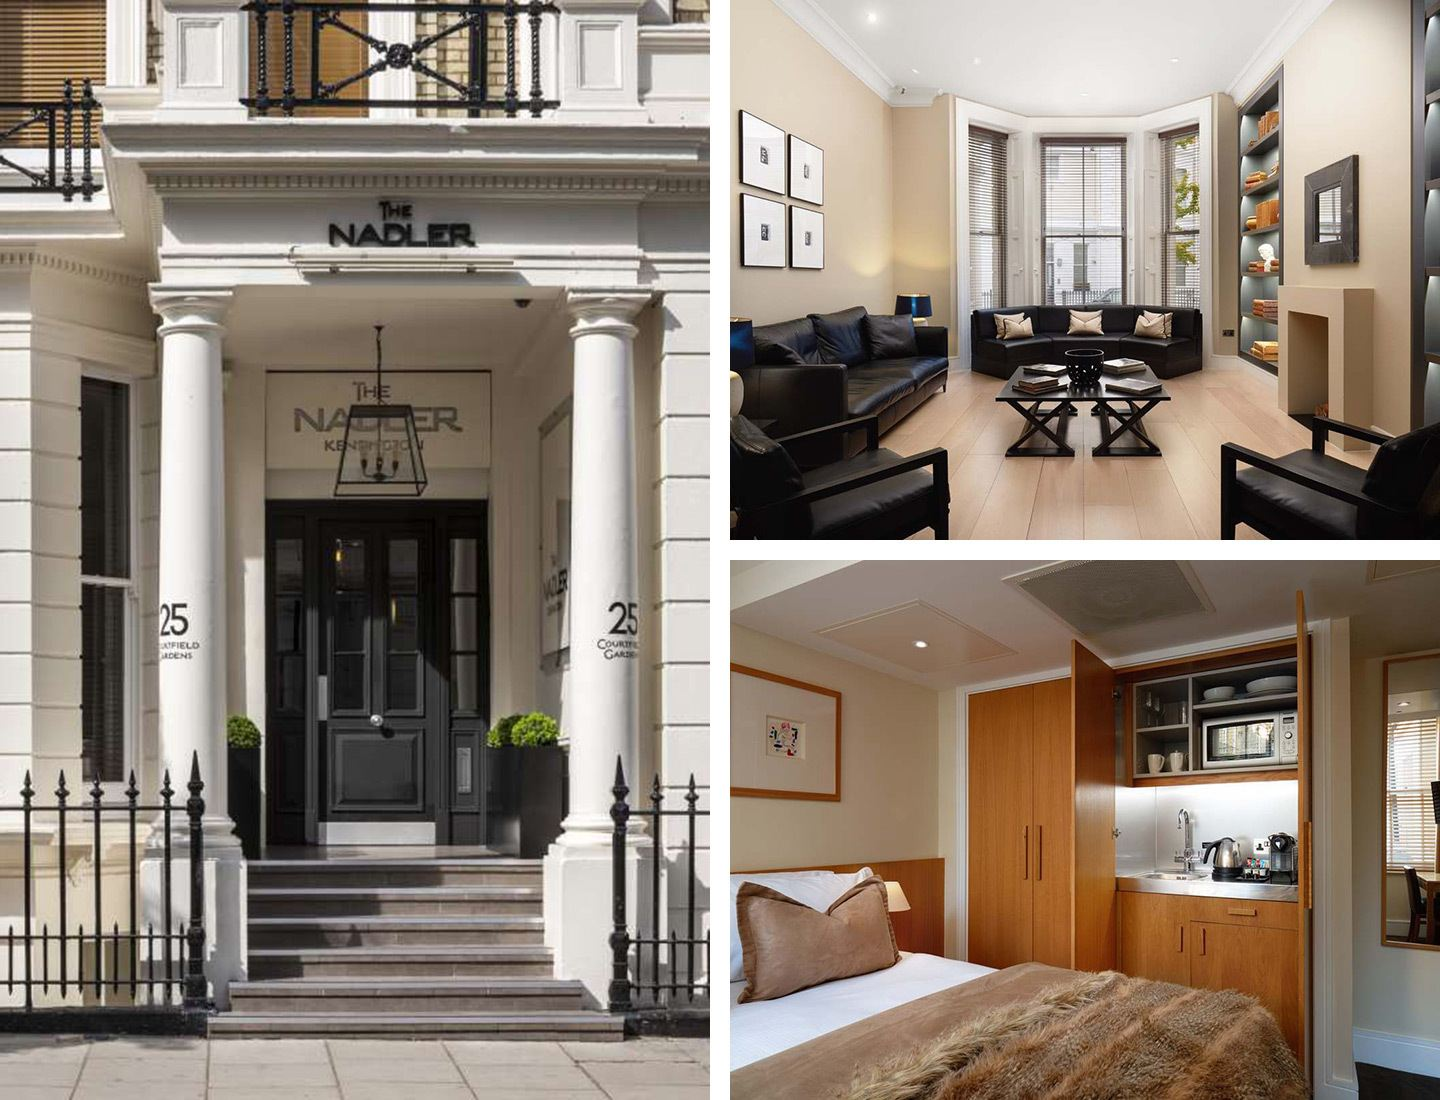 The Nadler budget hotel London